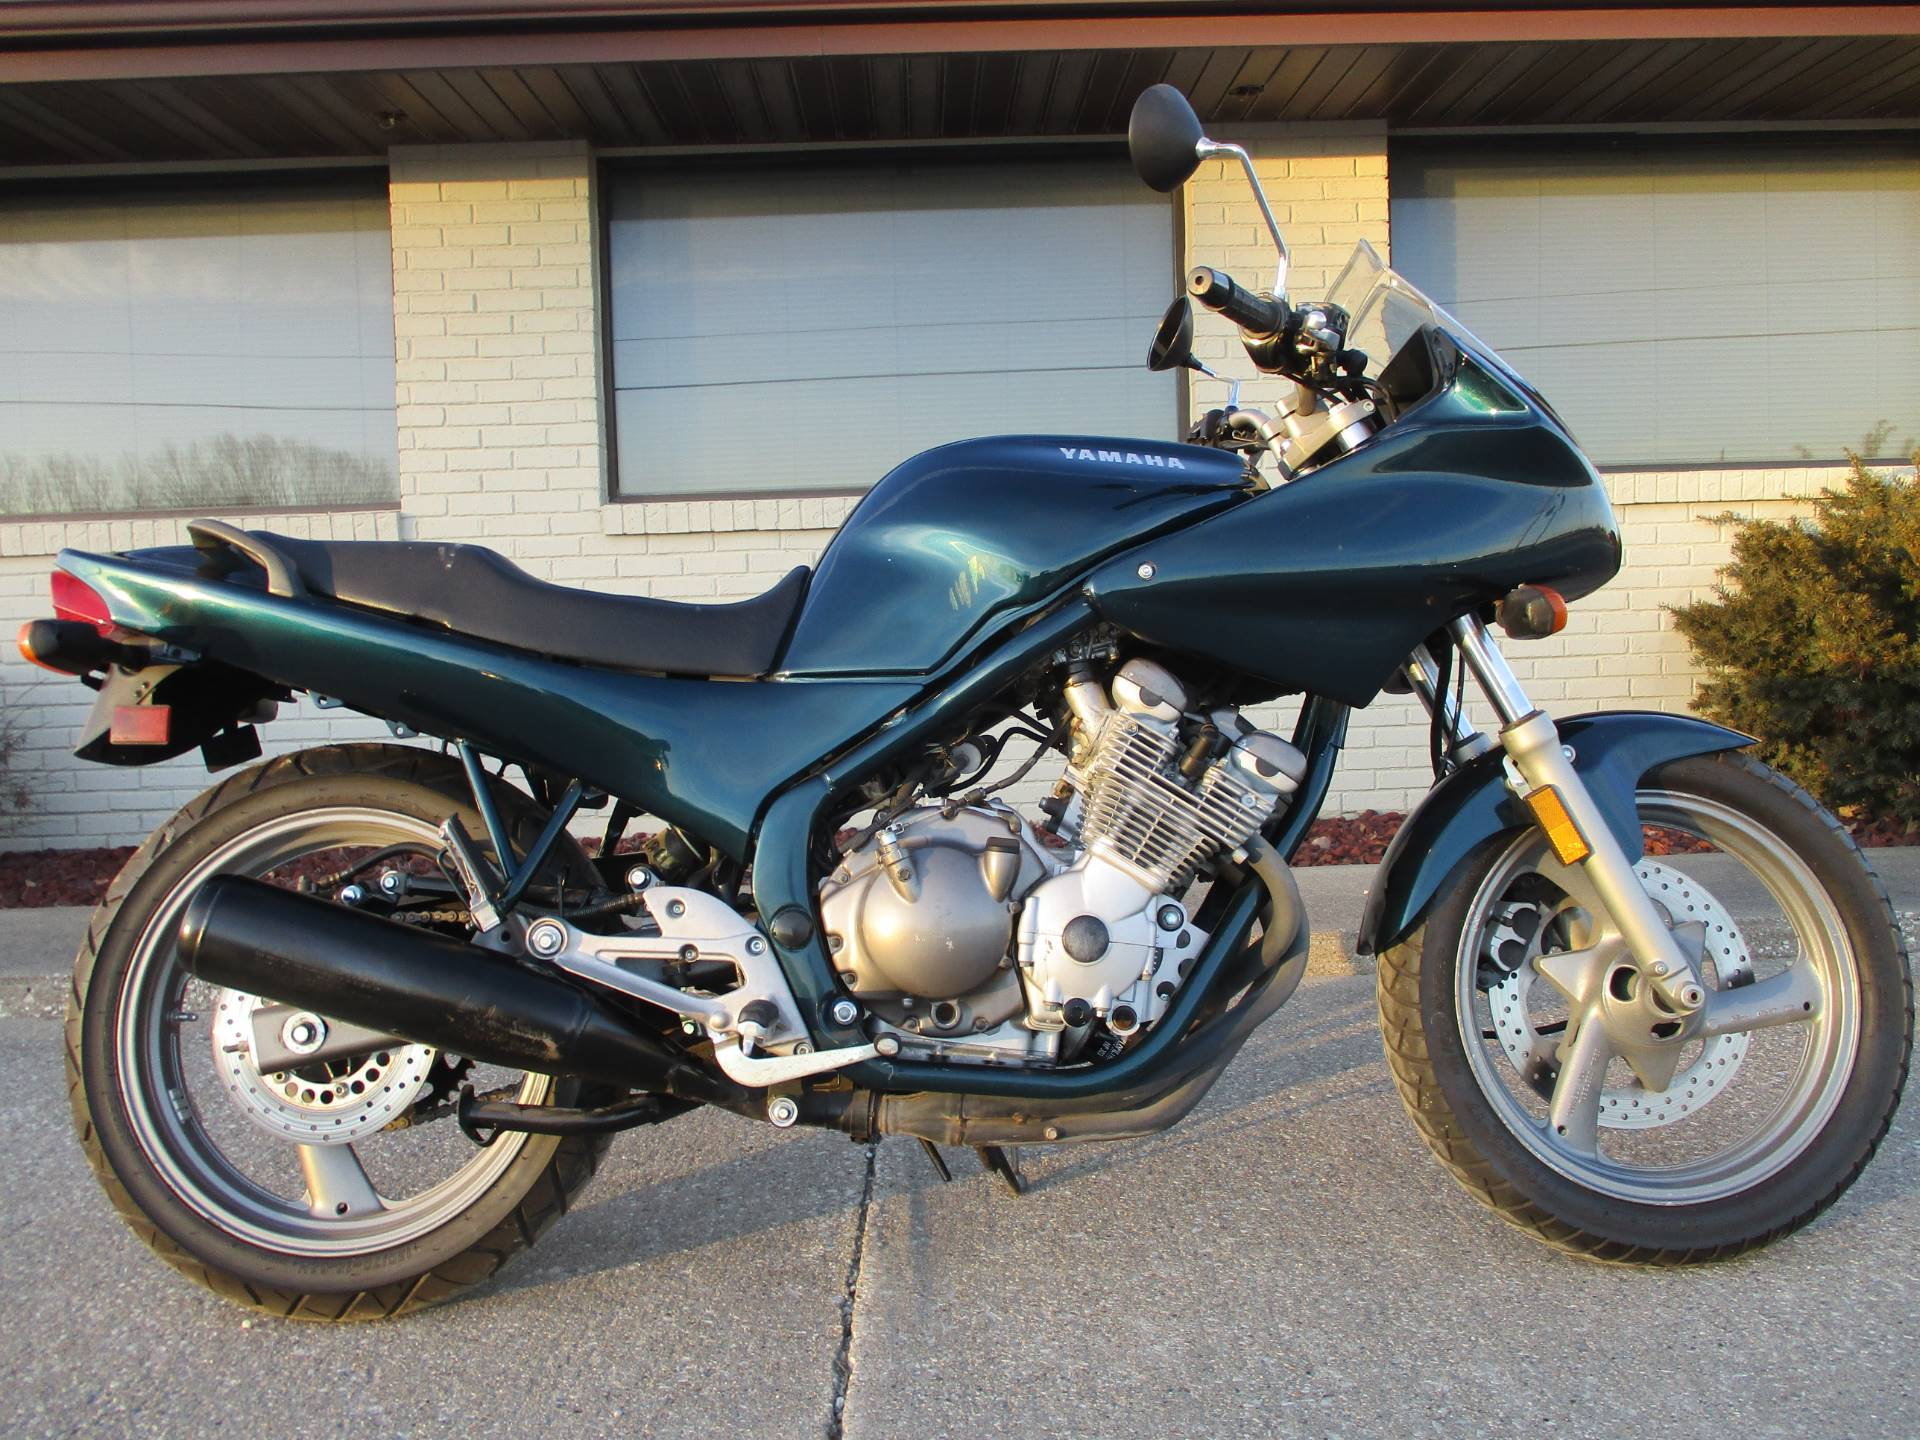 1993 Yamaha seca in Winterset, Iowa